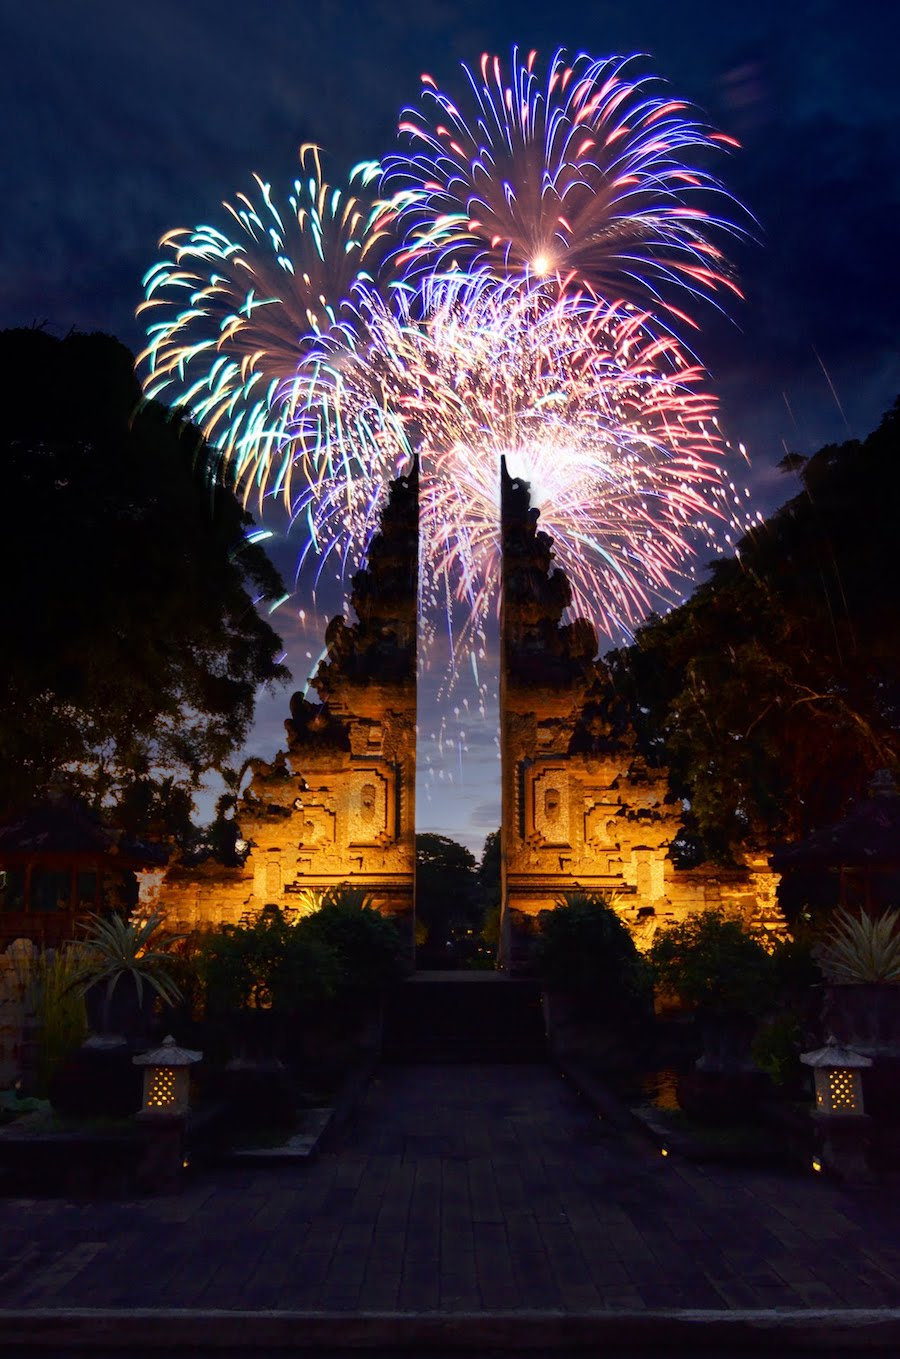 New Years Time Capsule Printable Questionnaire For Kids: New Years Eve In Bali 2018: The Biggest Parties And